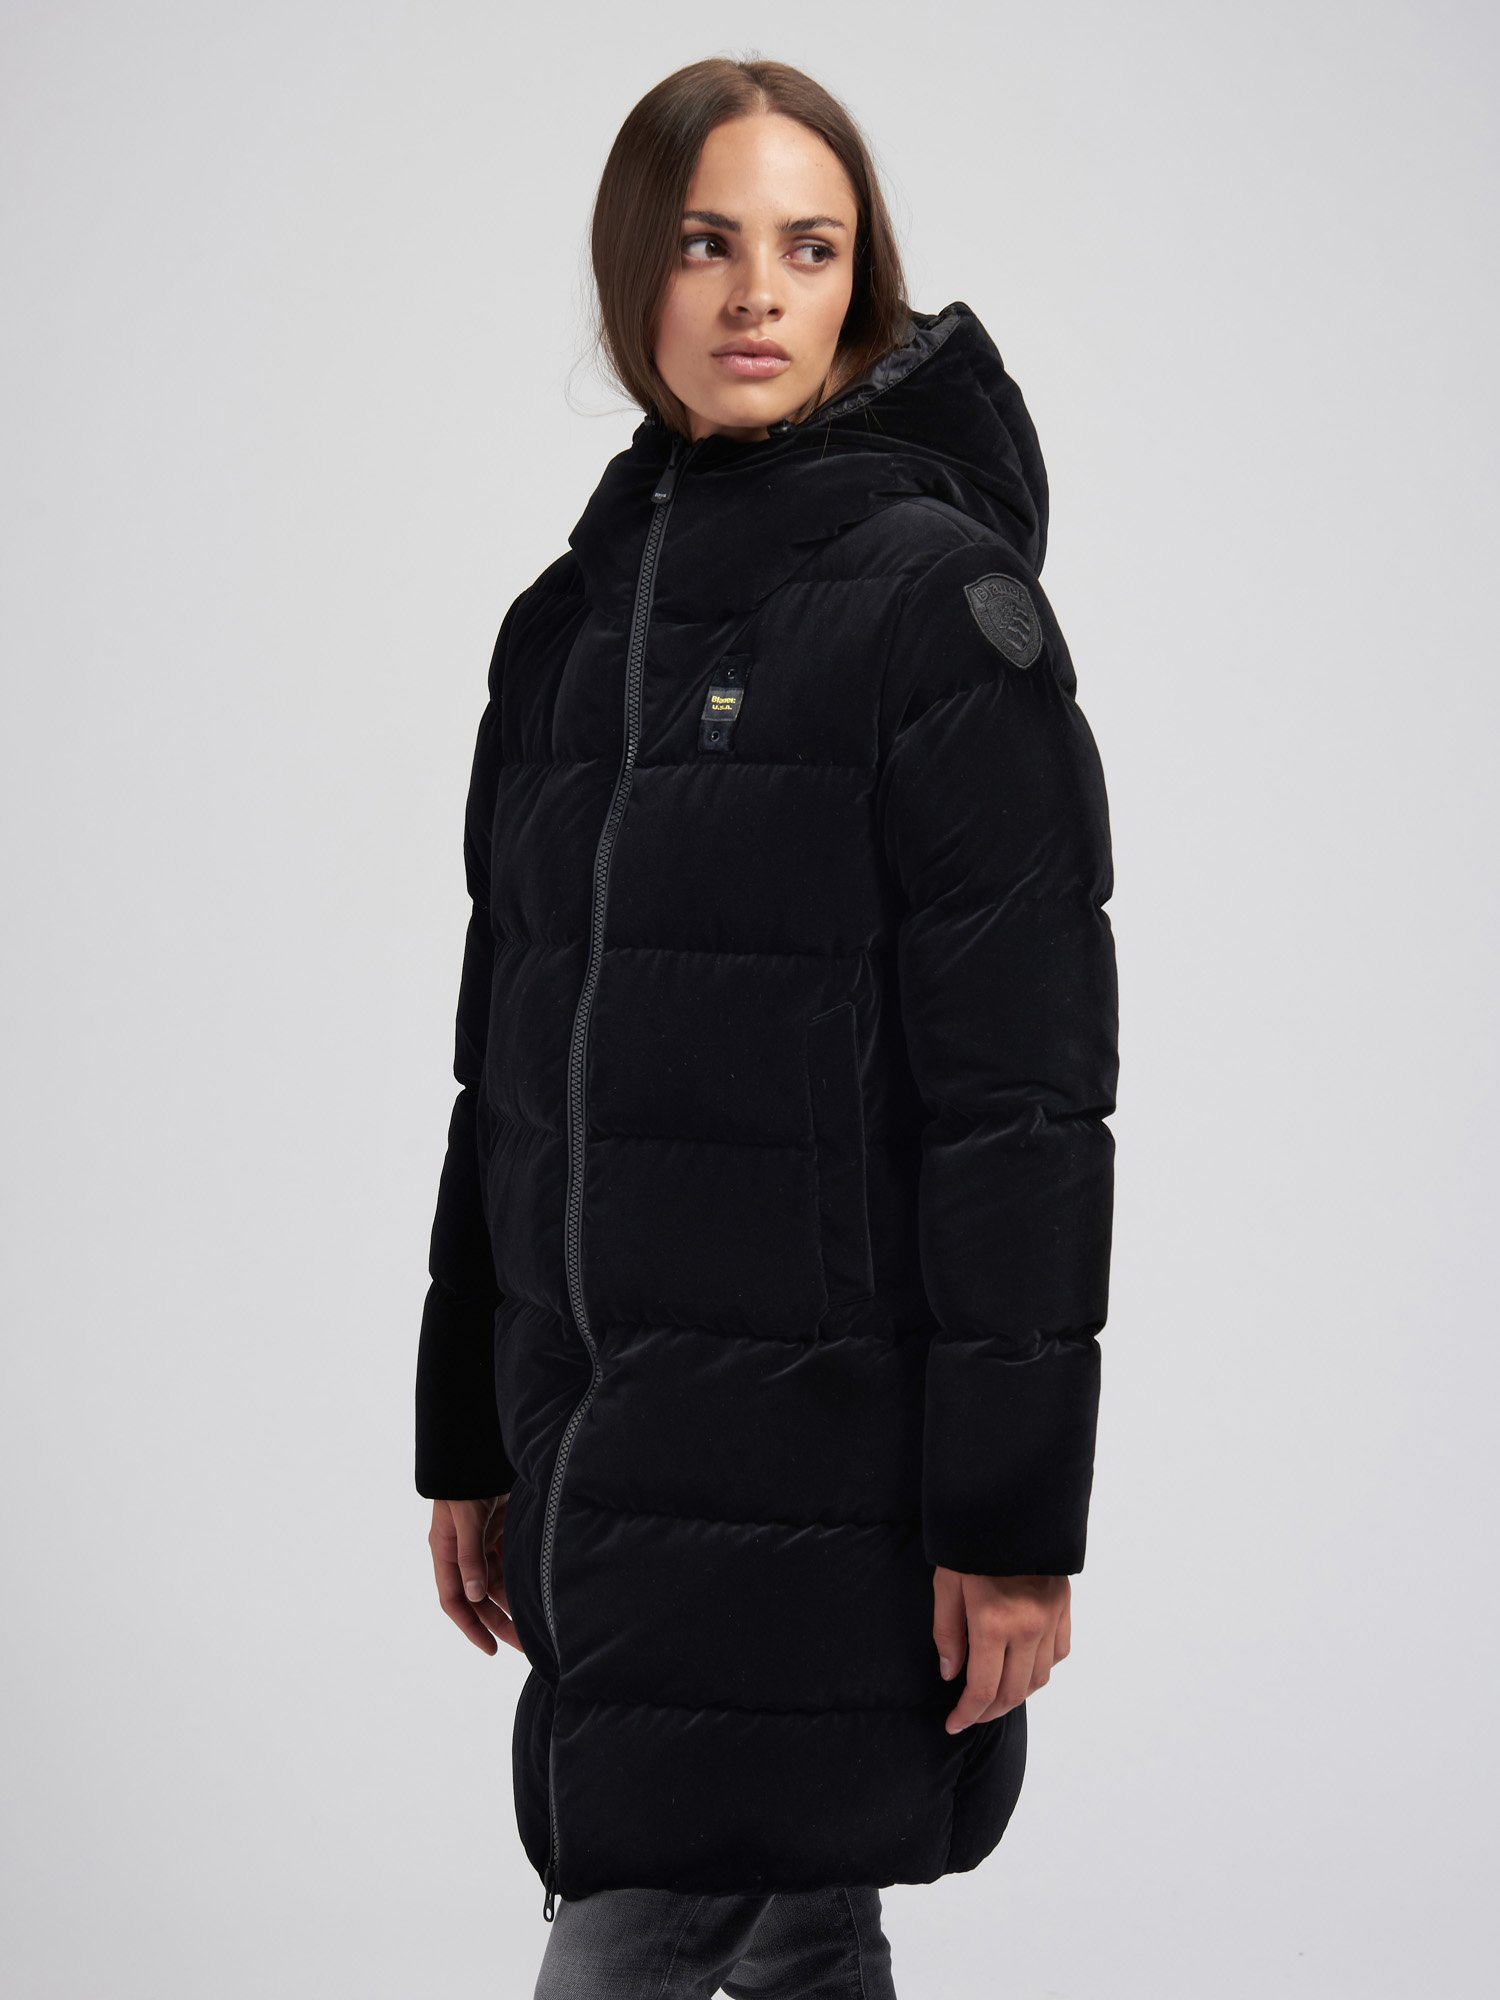 Blauer - ALICE LONG DOWN JACKET IN VELVET - Black - Blauer